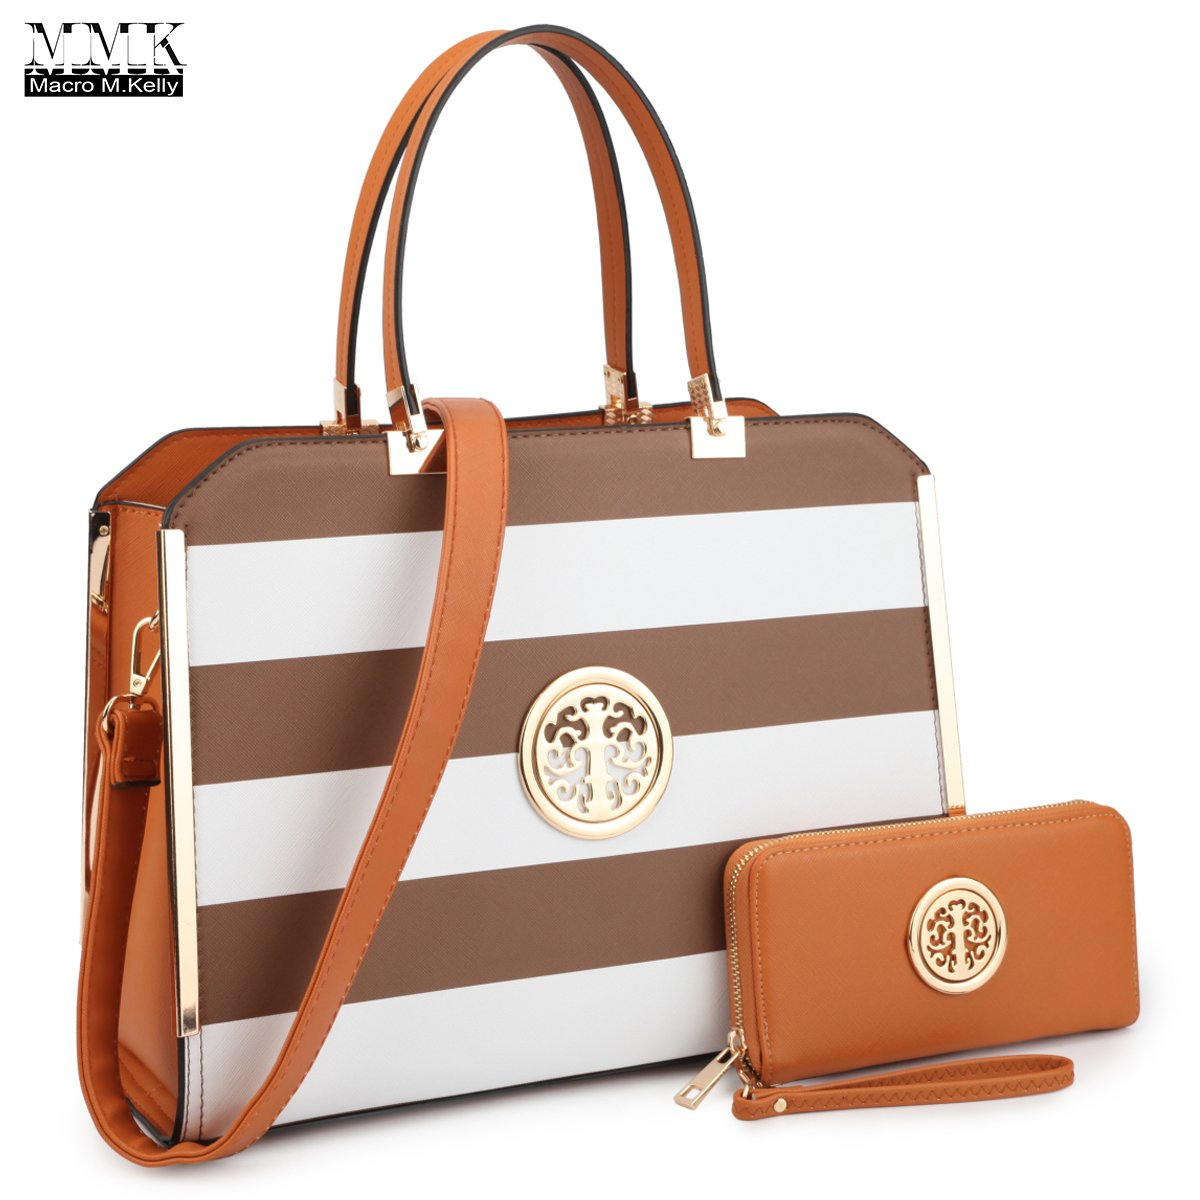 MMK collection Women Fashion Matching Satchel handbags